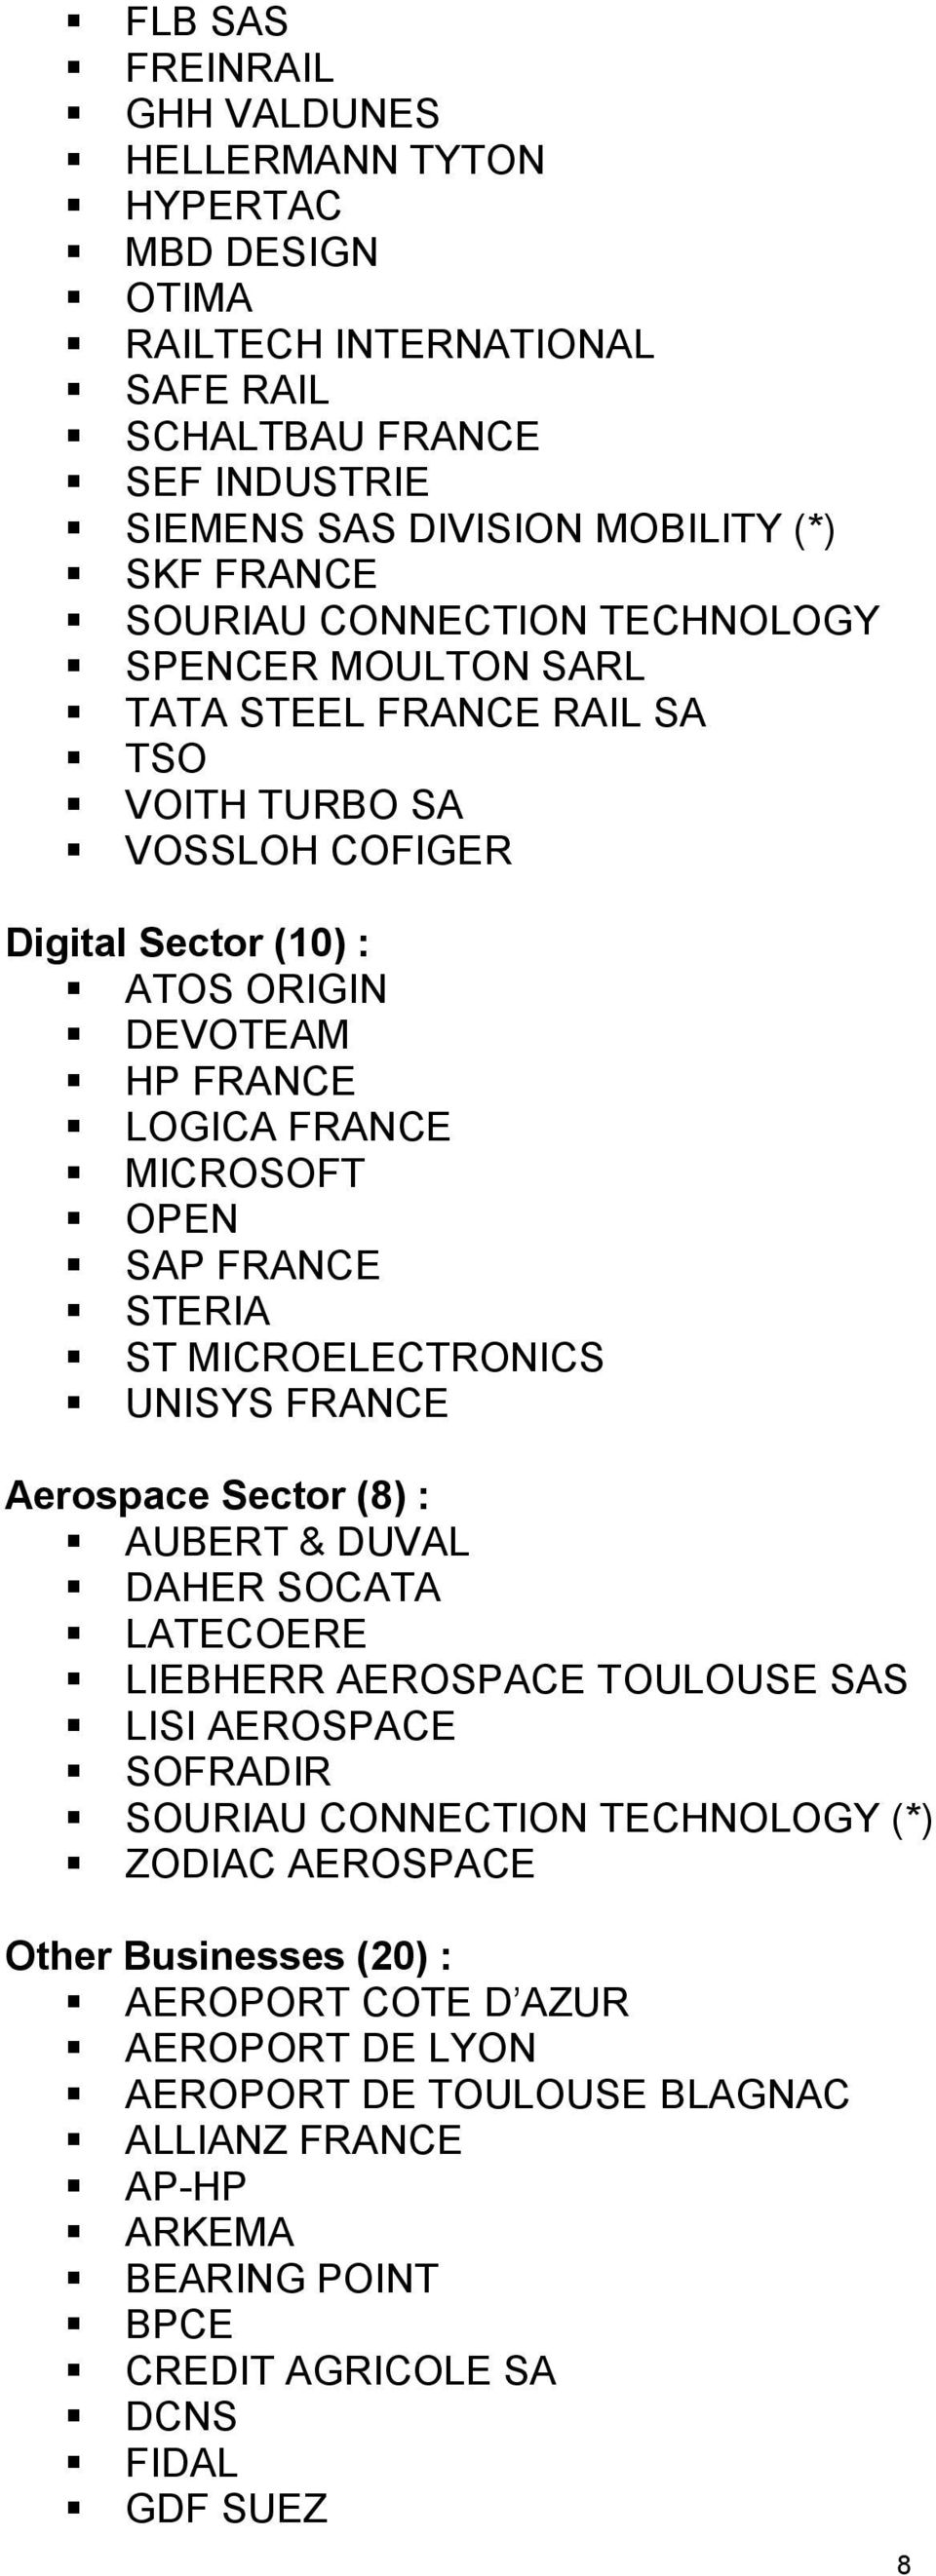 FRANCE STERIA ST MICROELECTRONICS UNISYS FRANCE Aerospace Sector (8) : AUBERT & DUVAL DAHER SOCATA LATECOERE LIEBHERR AEROSPACE TOULOUSE SAS LISI AEROSPACE SOFRADIR SOURIAU CONNECTION